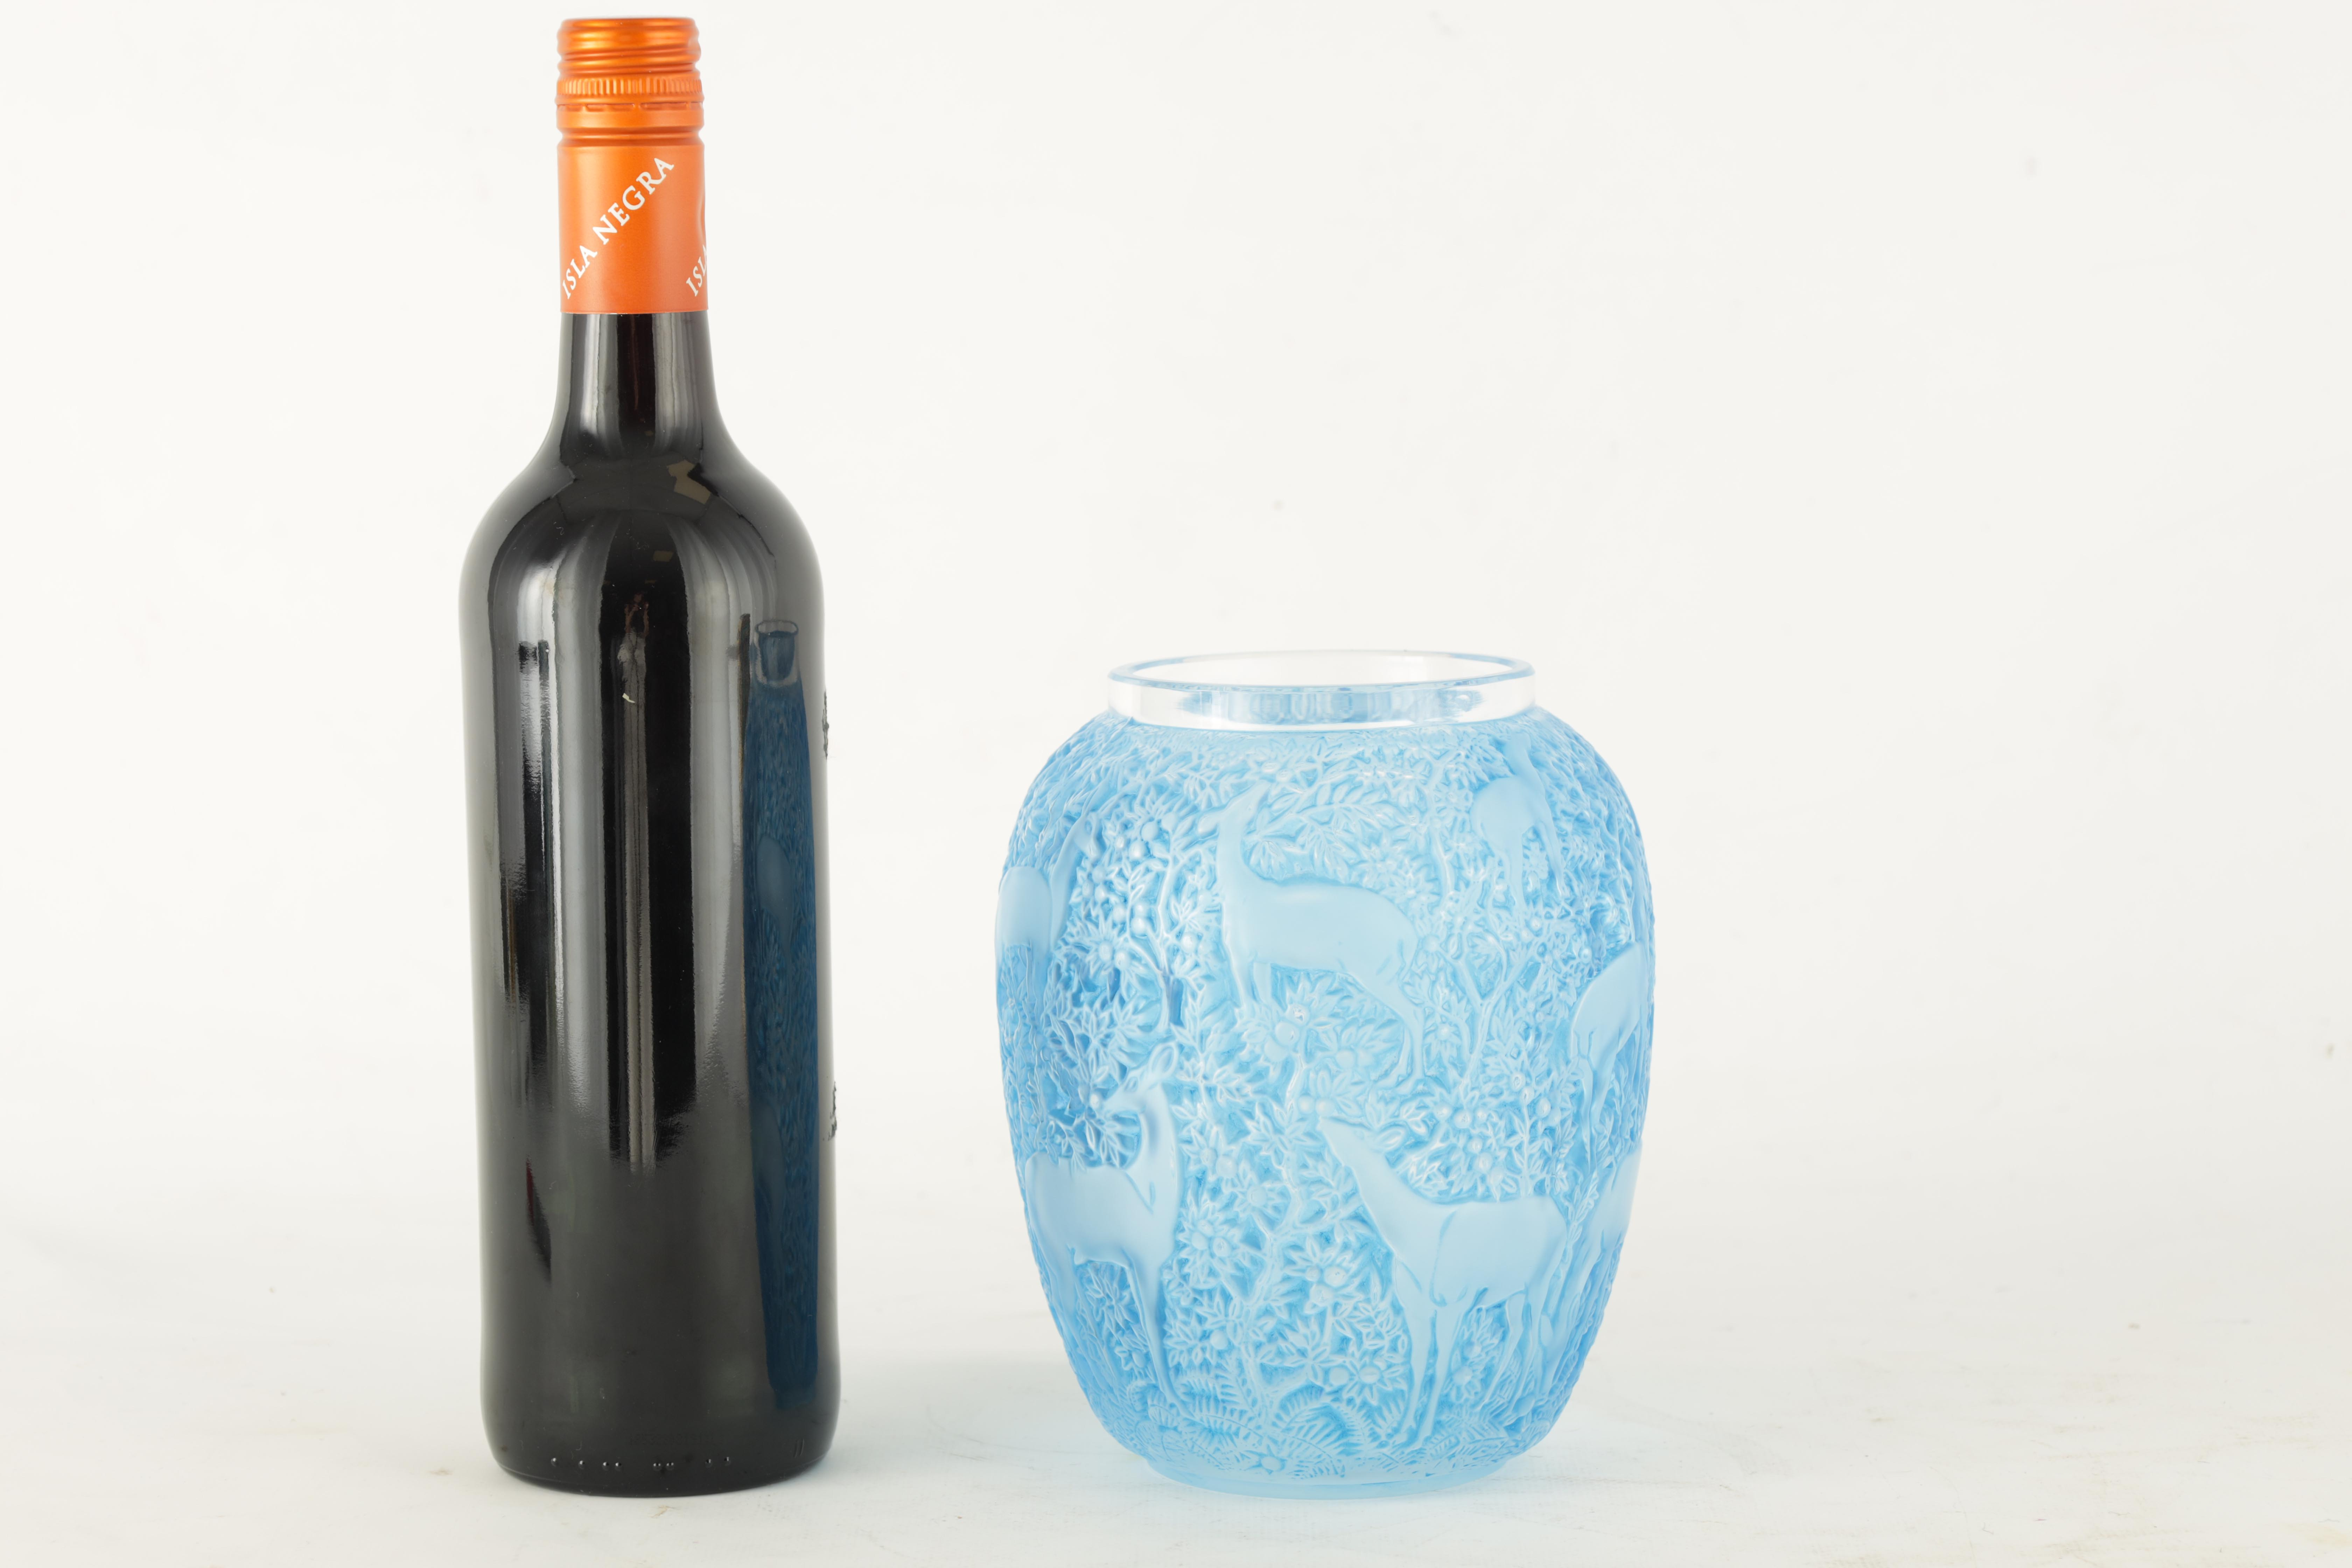 R LALIQUE, A BLUE STAINED 'BICHES' GLASS VASE of ovoid form with inward curved rim and collared neck - Image 2 of 7